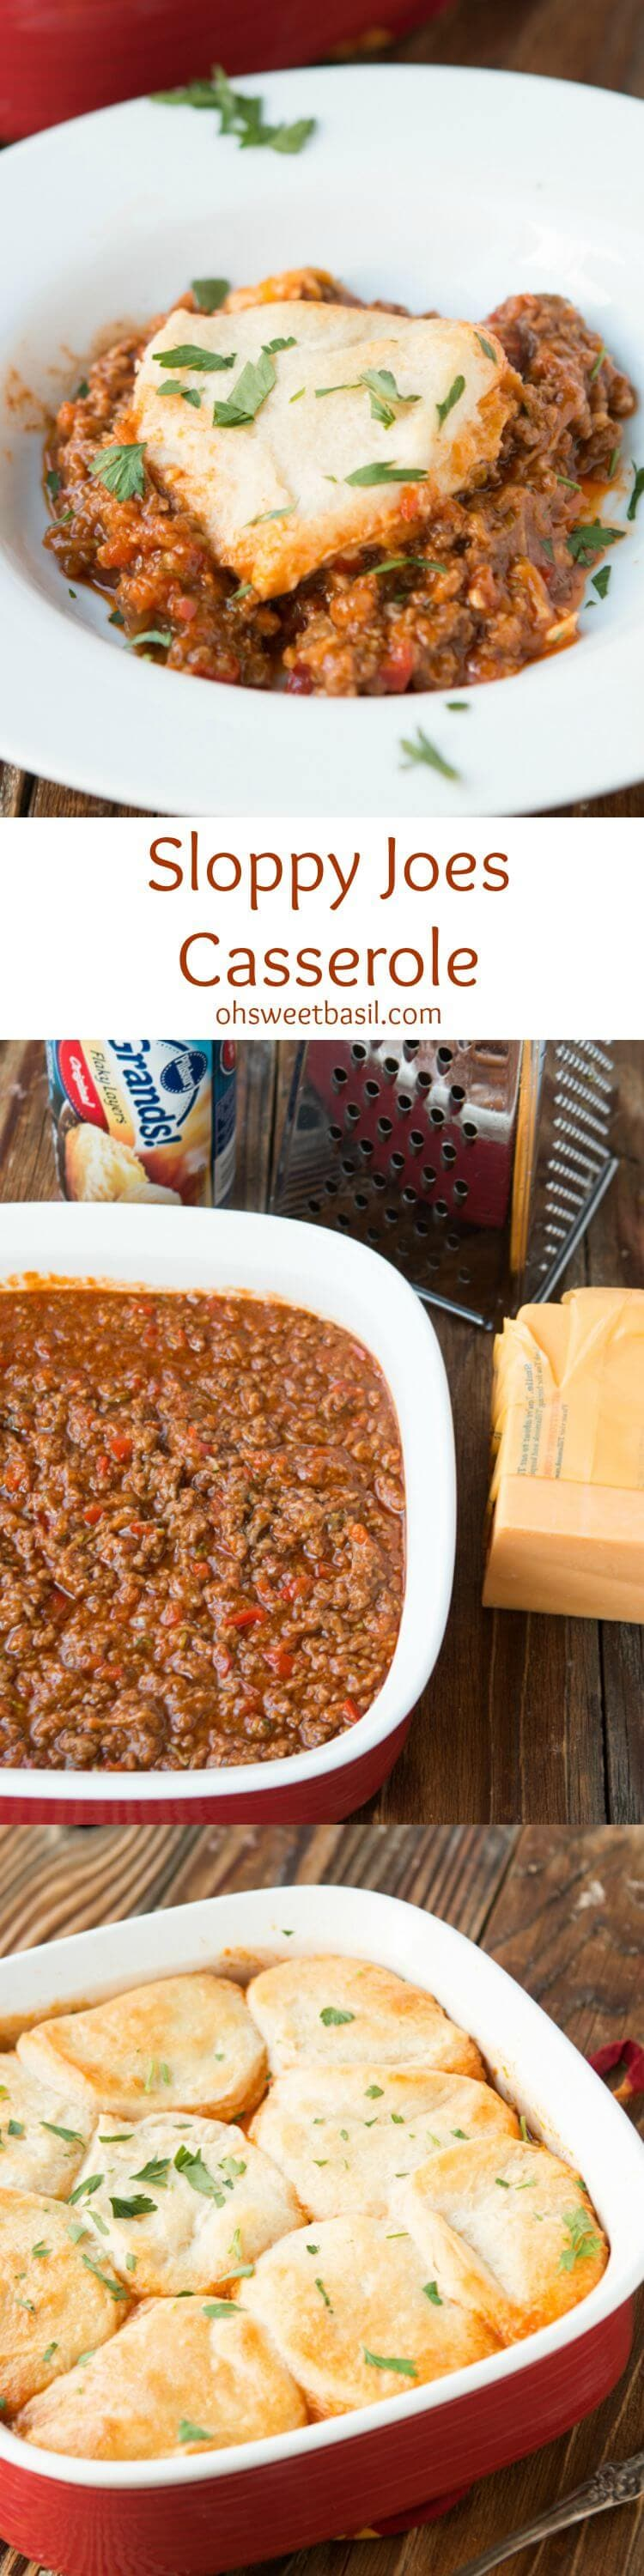 Kid friendly and adult craveable sloppy joes casserole! ohsweetbasil.com